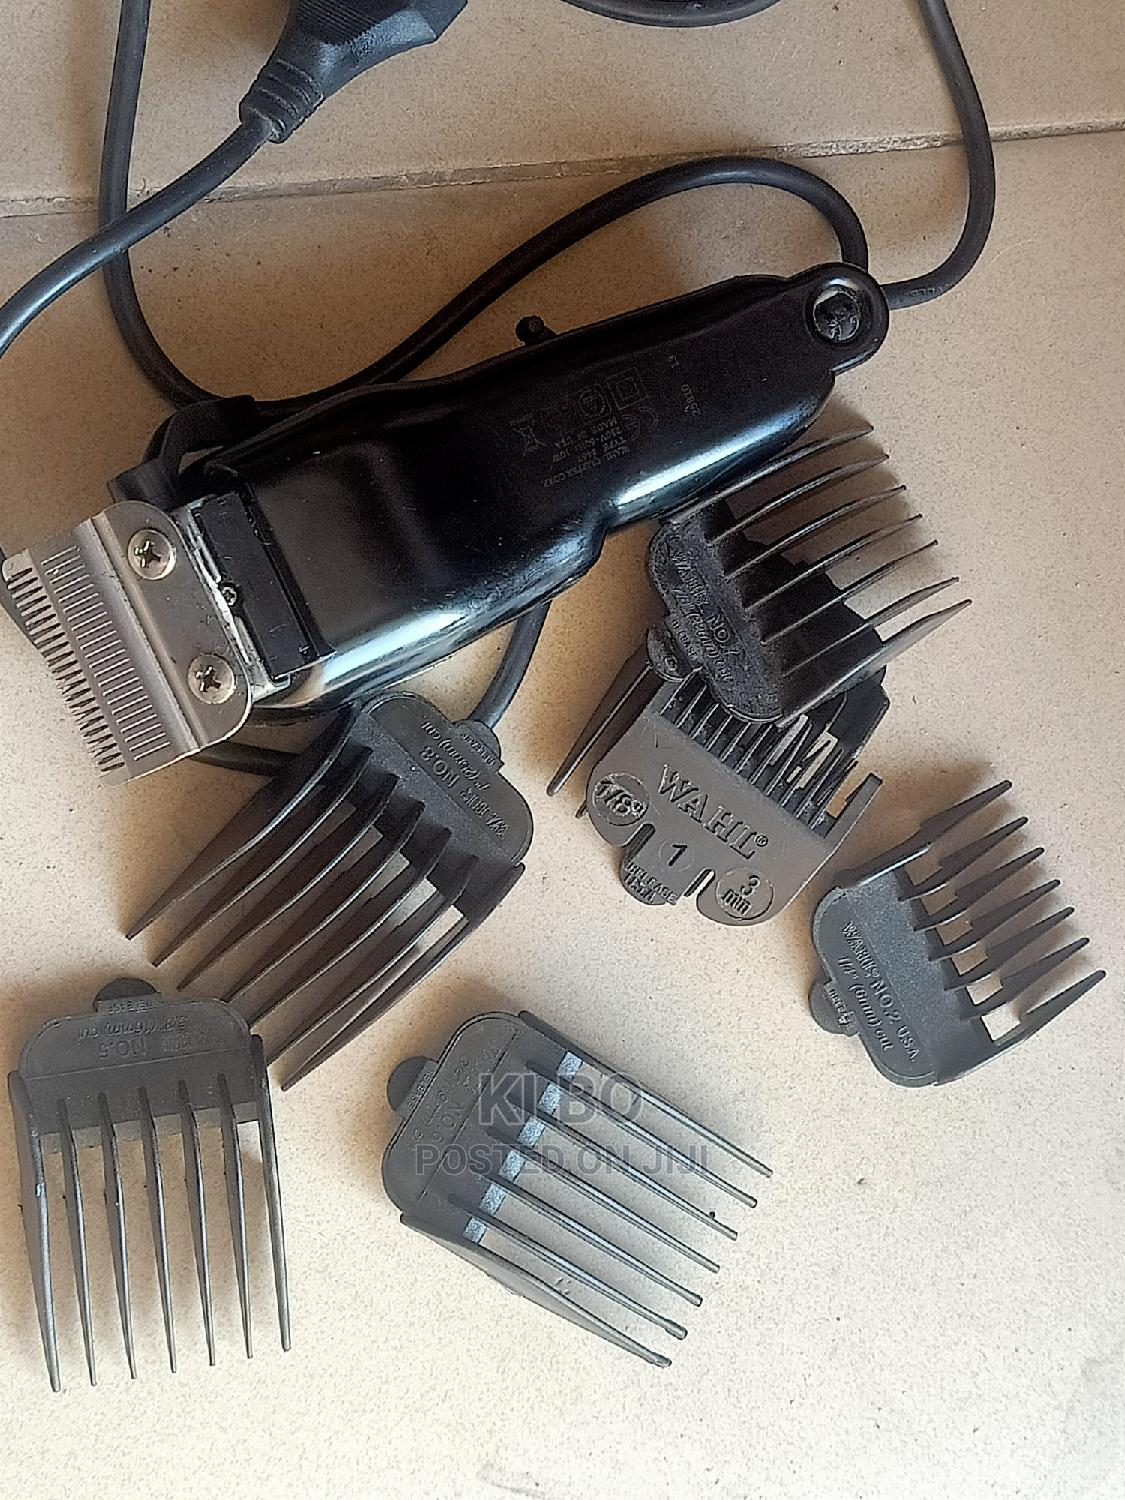 Wahl Hair Clipper | Tools & Accessories for sale in Kinondoni, Dar es Salaam, Tanzania